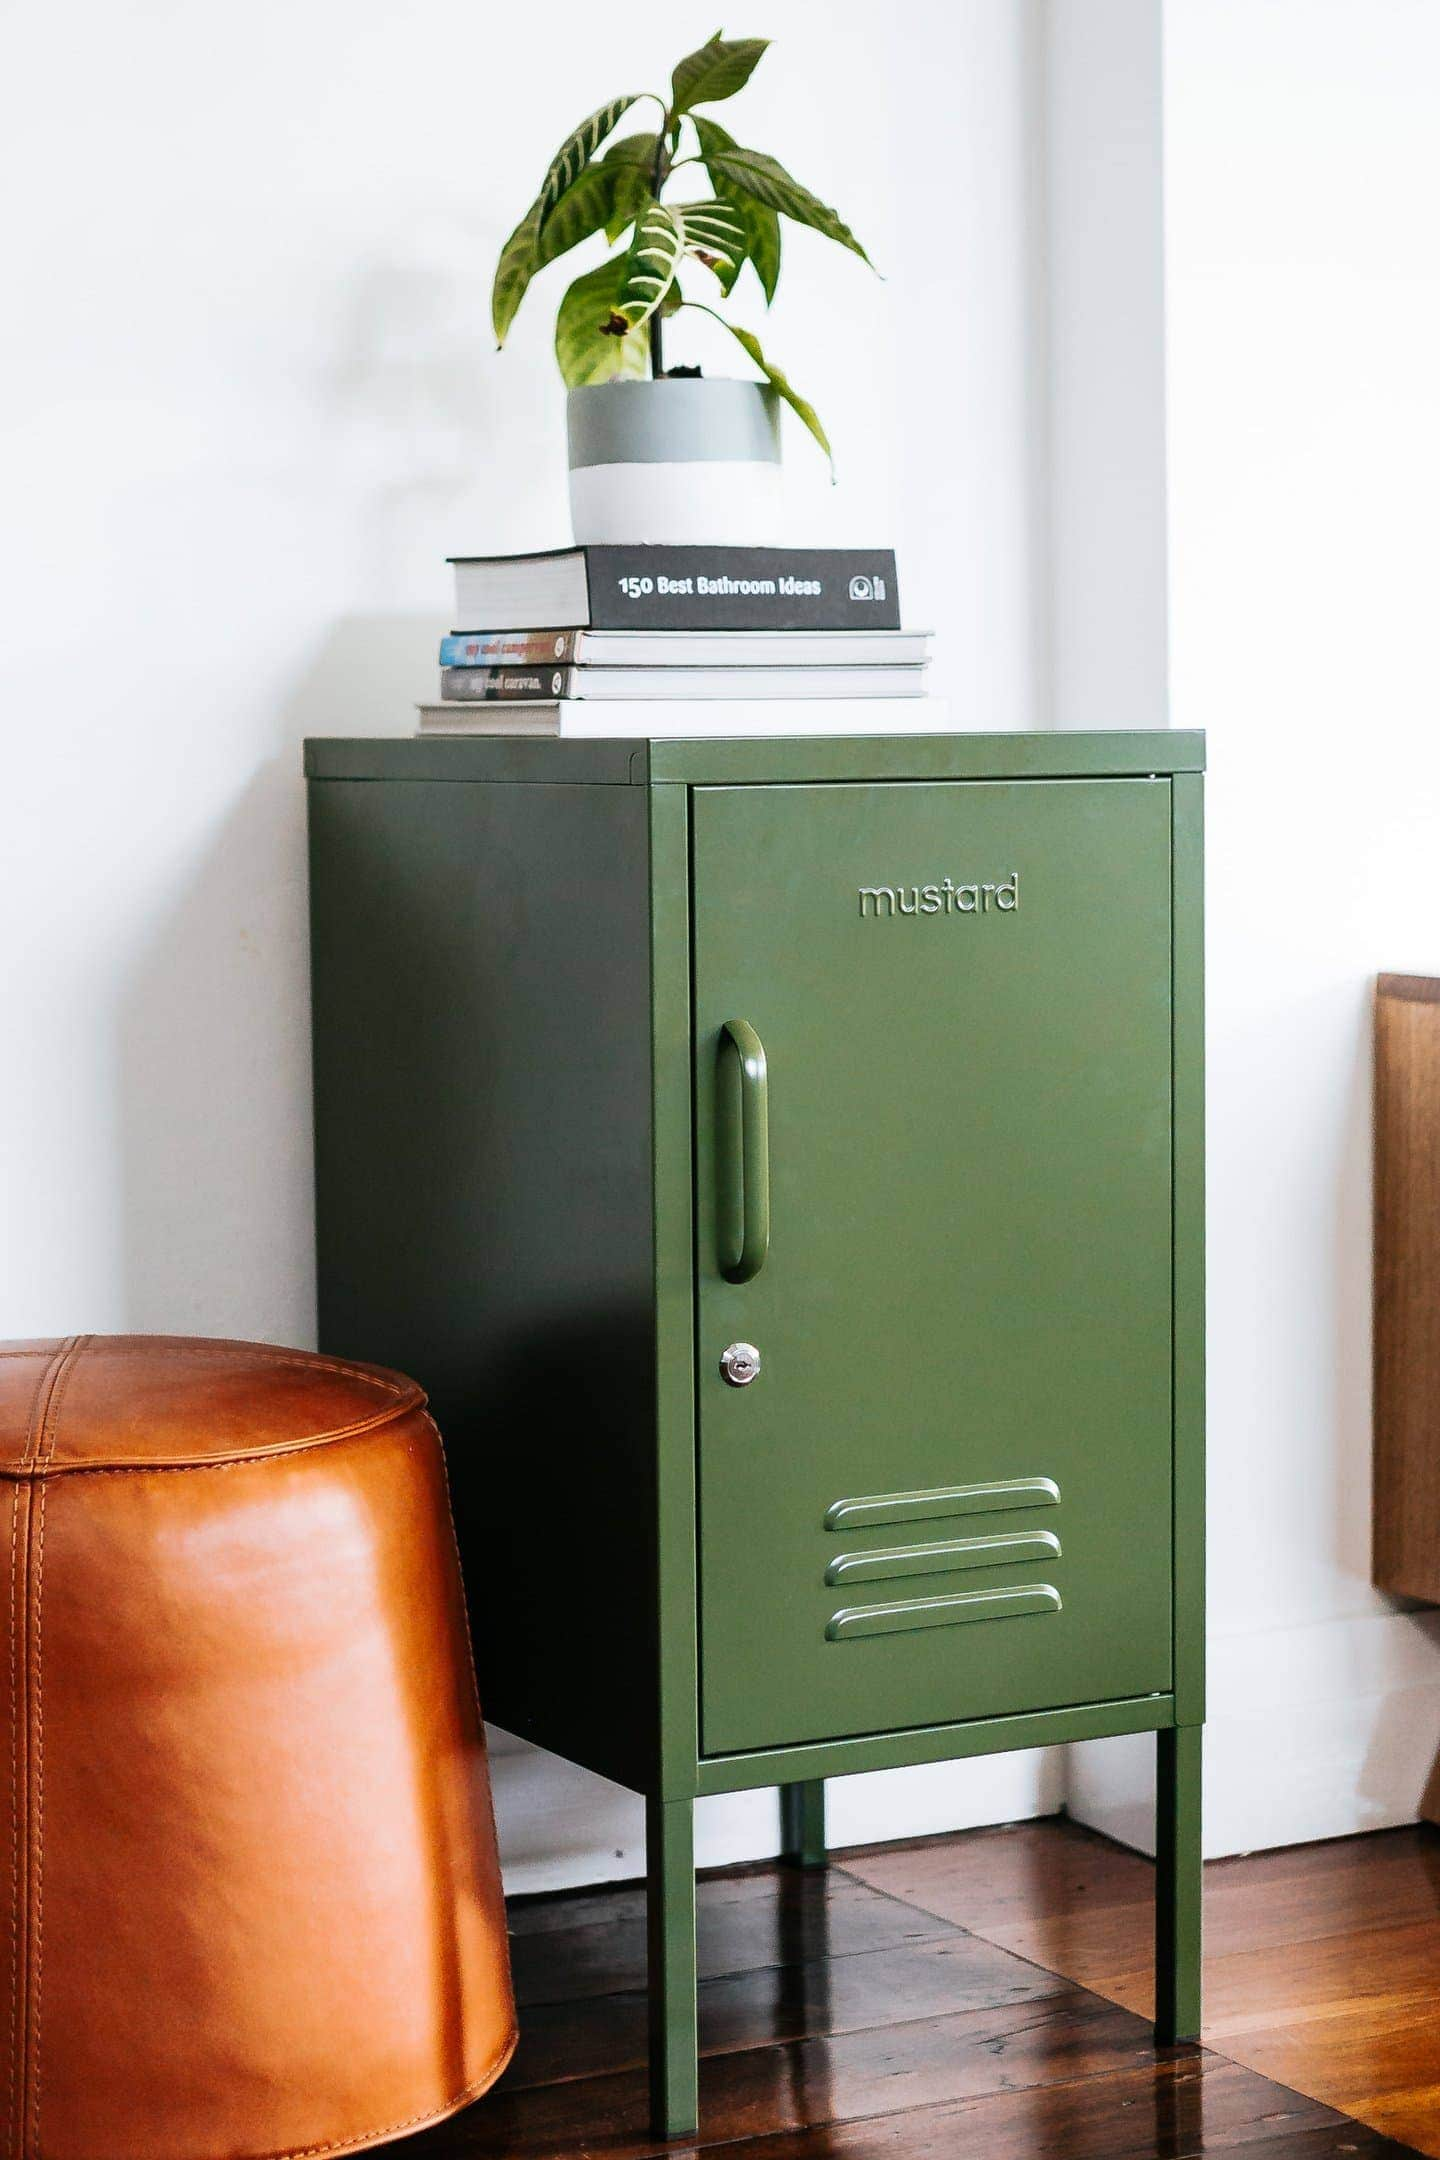 olive green locker by mustard made